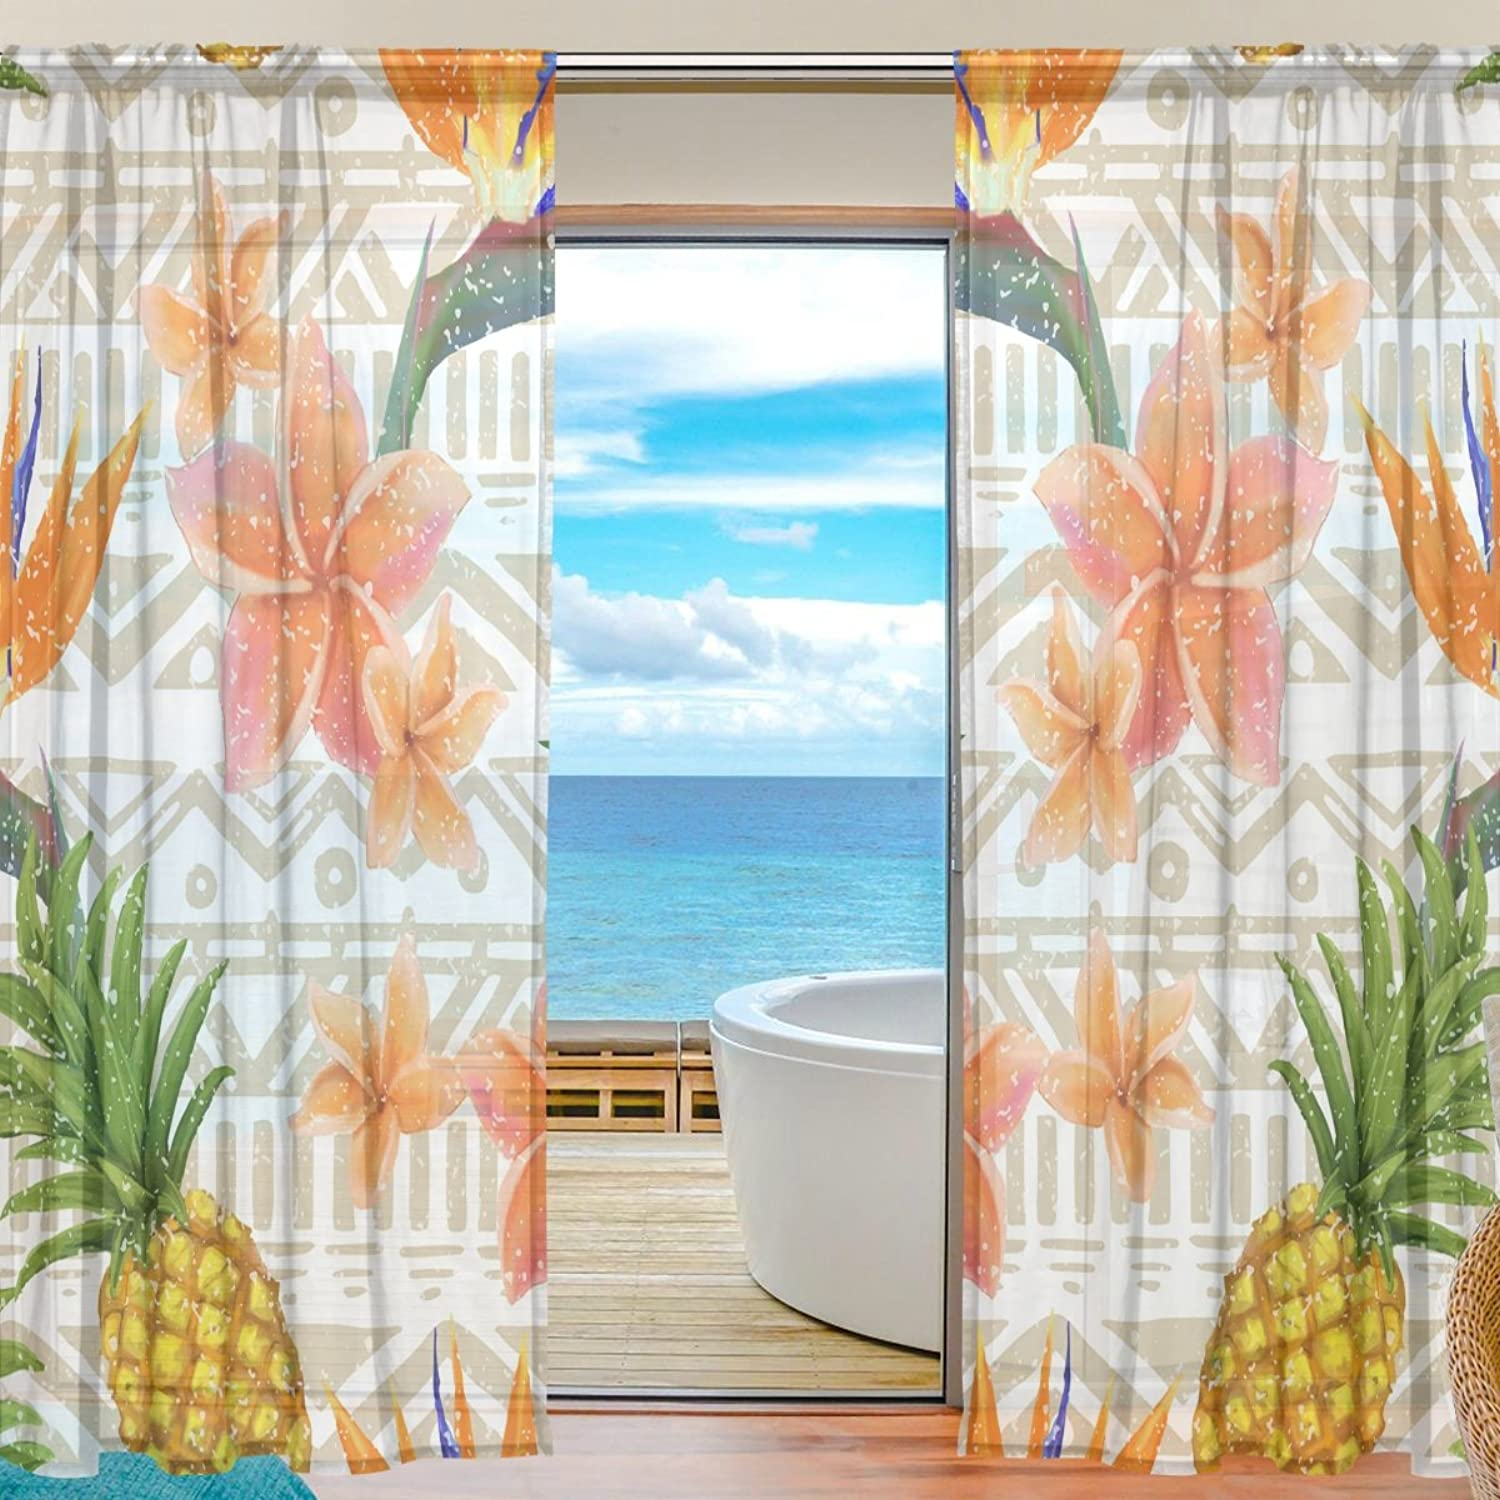 Vantaso Sheer Curtains 78 inch Long Tropical Exotic Flowers and Pineapple for Kids Girls Bedroom Living Room Window Decorative 2 Panels